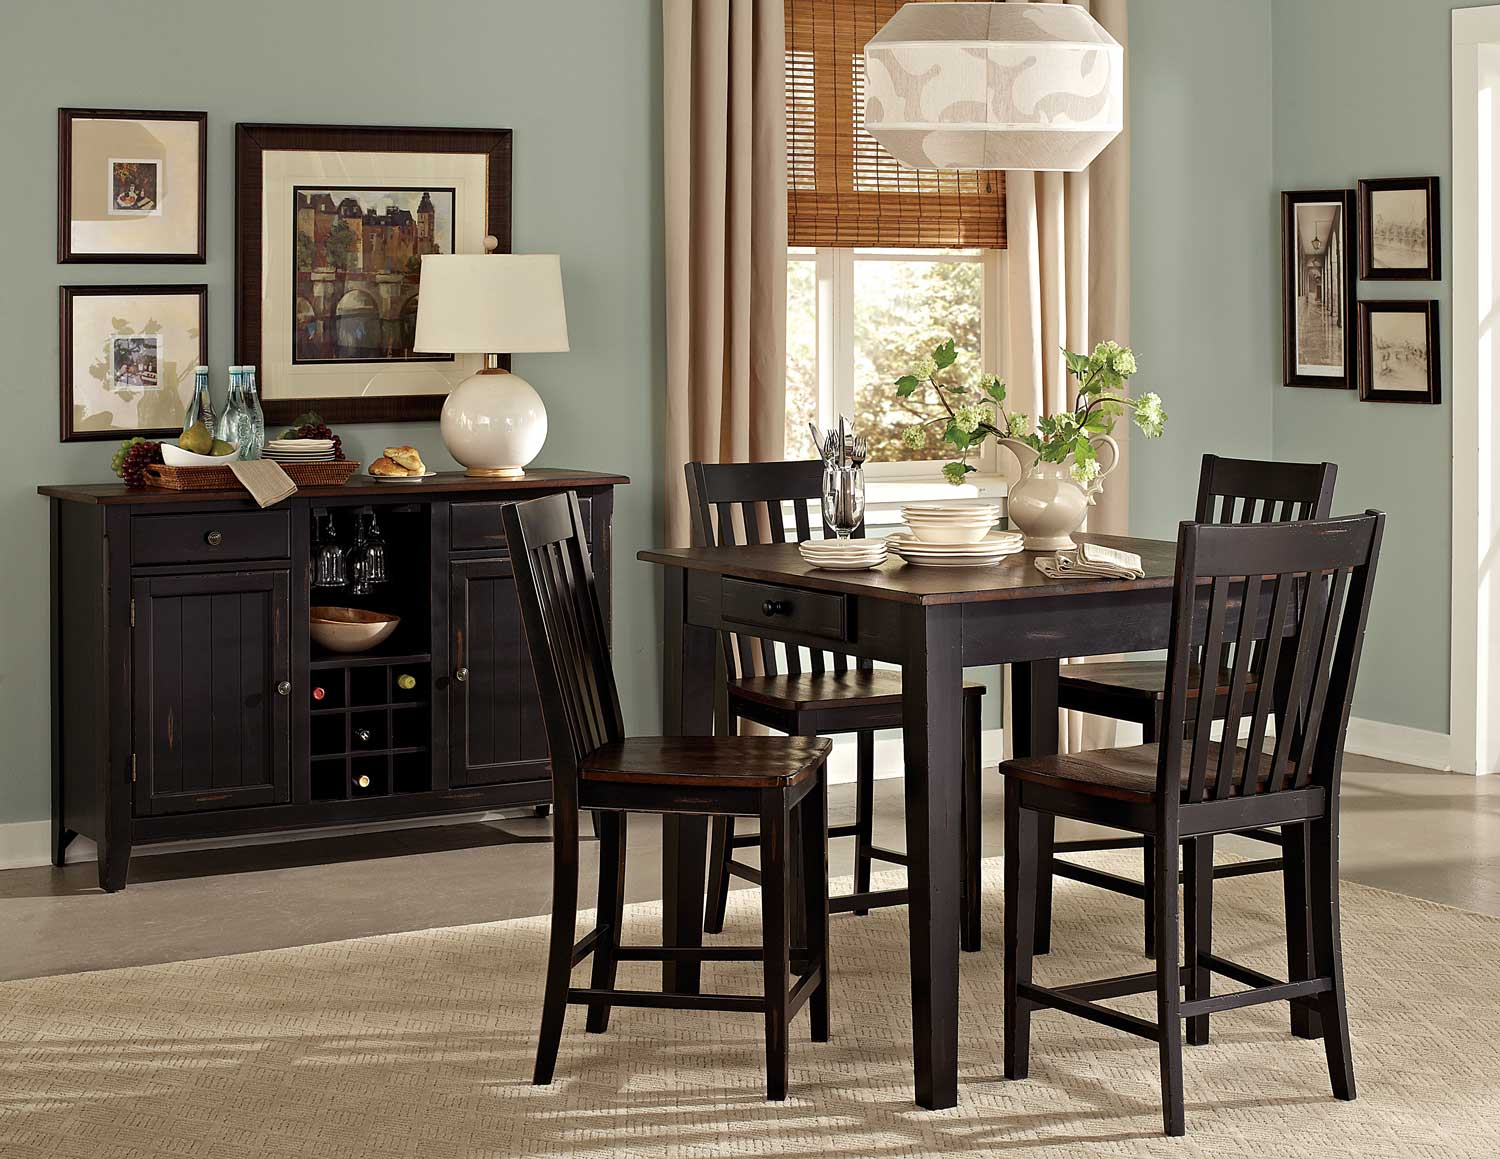 Homelegance Three Falls Counter Height Dining Set With Storage - Two Tone Dark Brown/Black Sand